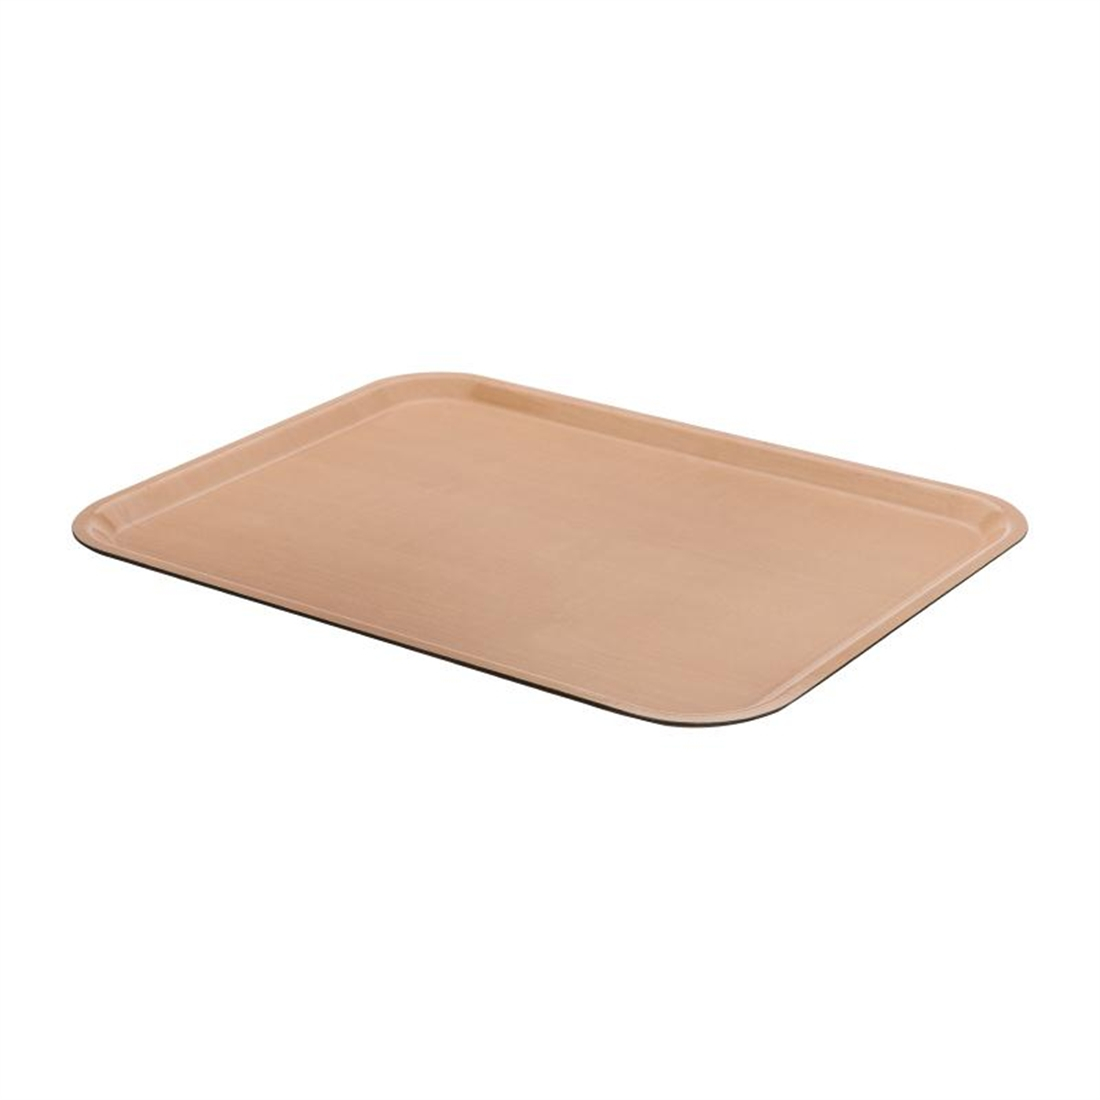 Cambro Mykonos Food Tray Birch 430mm